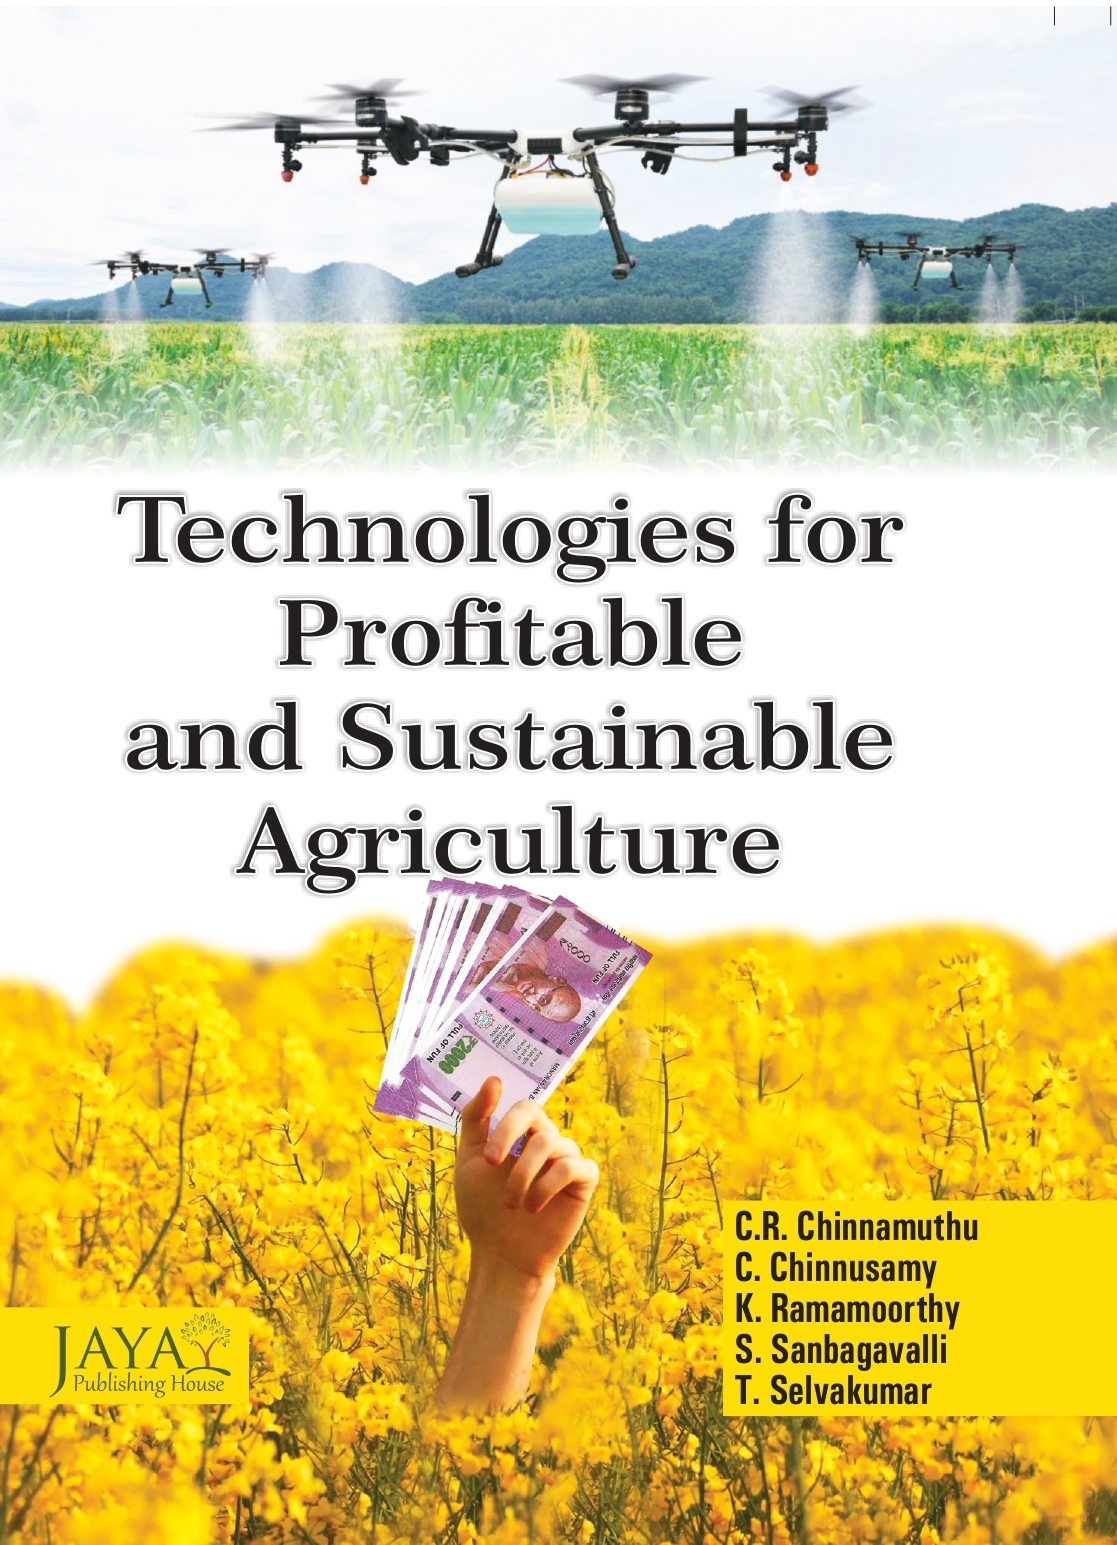 Technologies for Profitable and Sustainable Agriculture